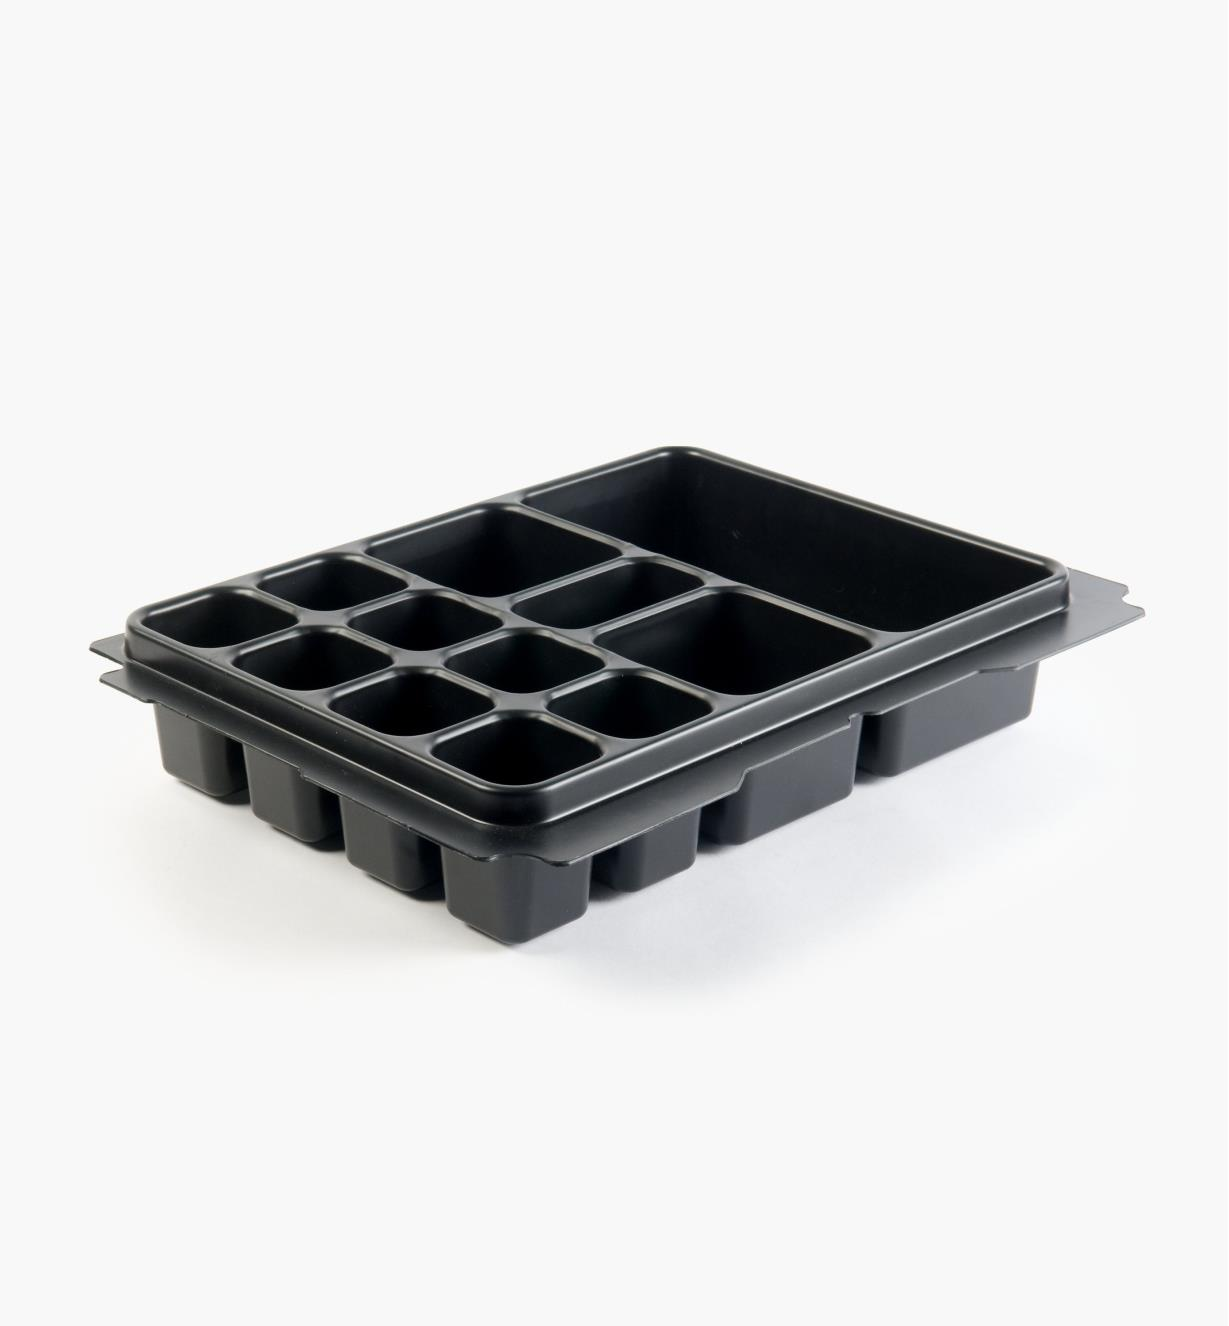 68K4550 - T-Loc Systainer Universal Tray, 73mm